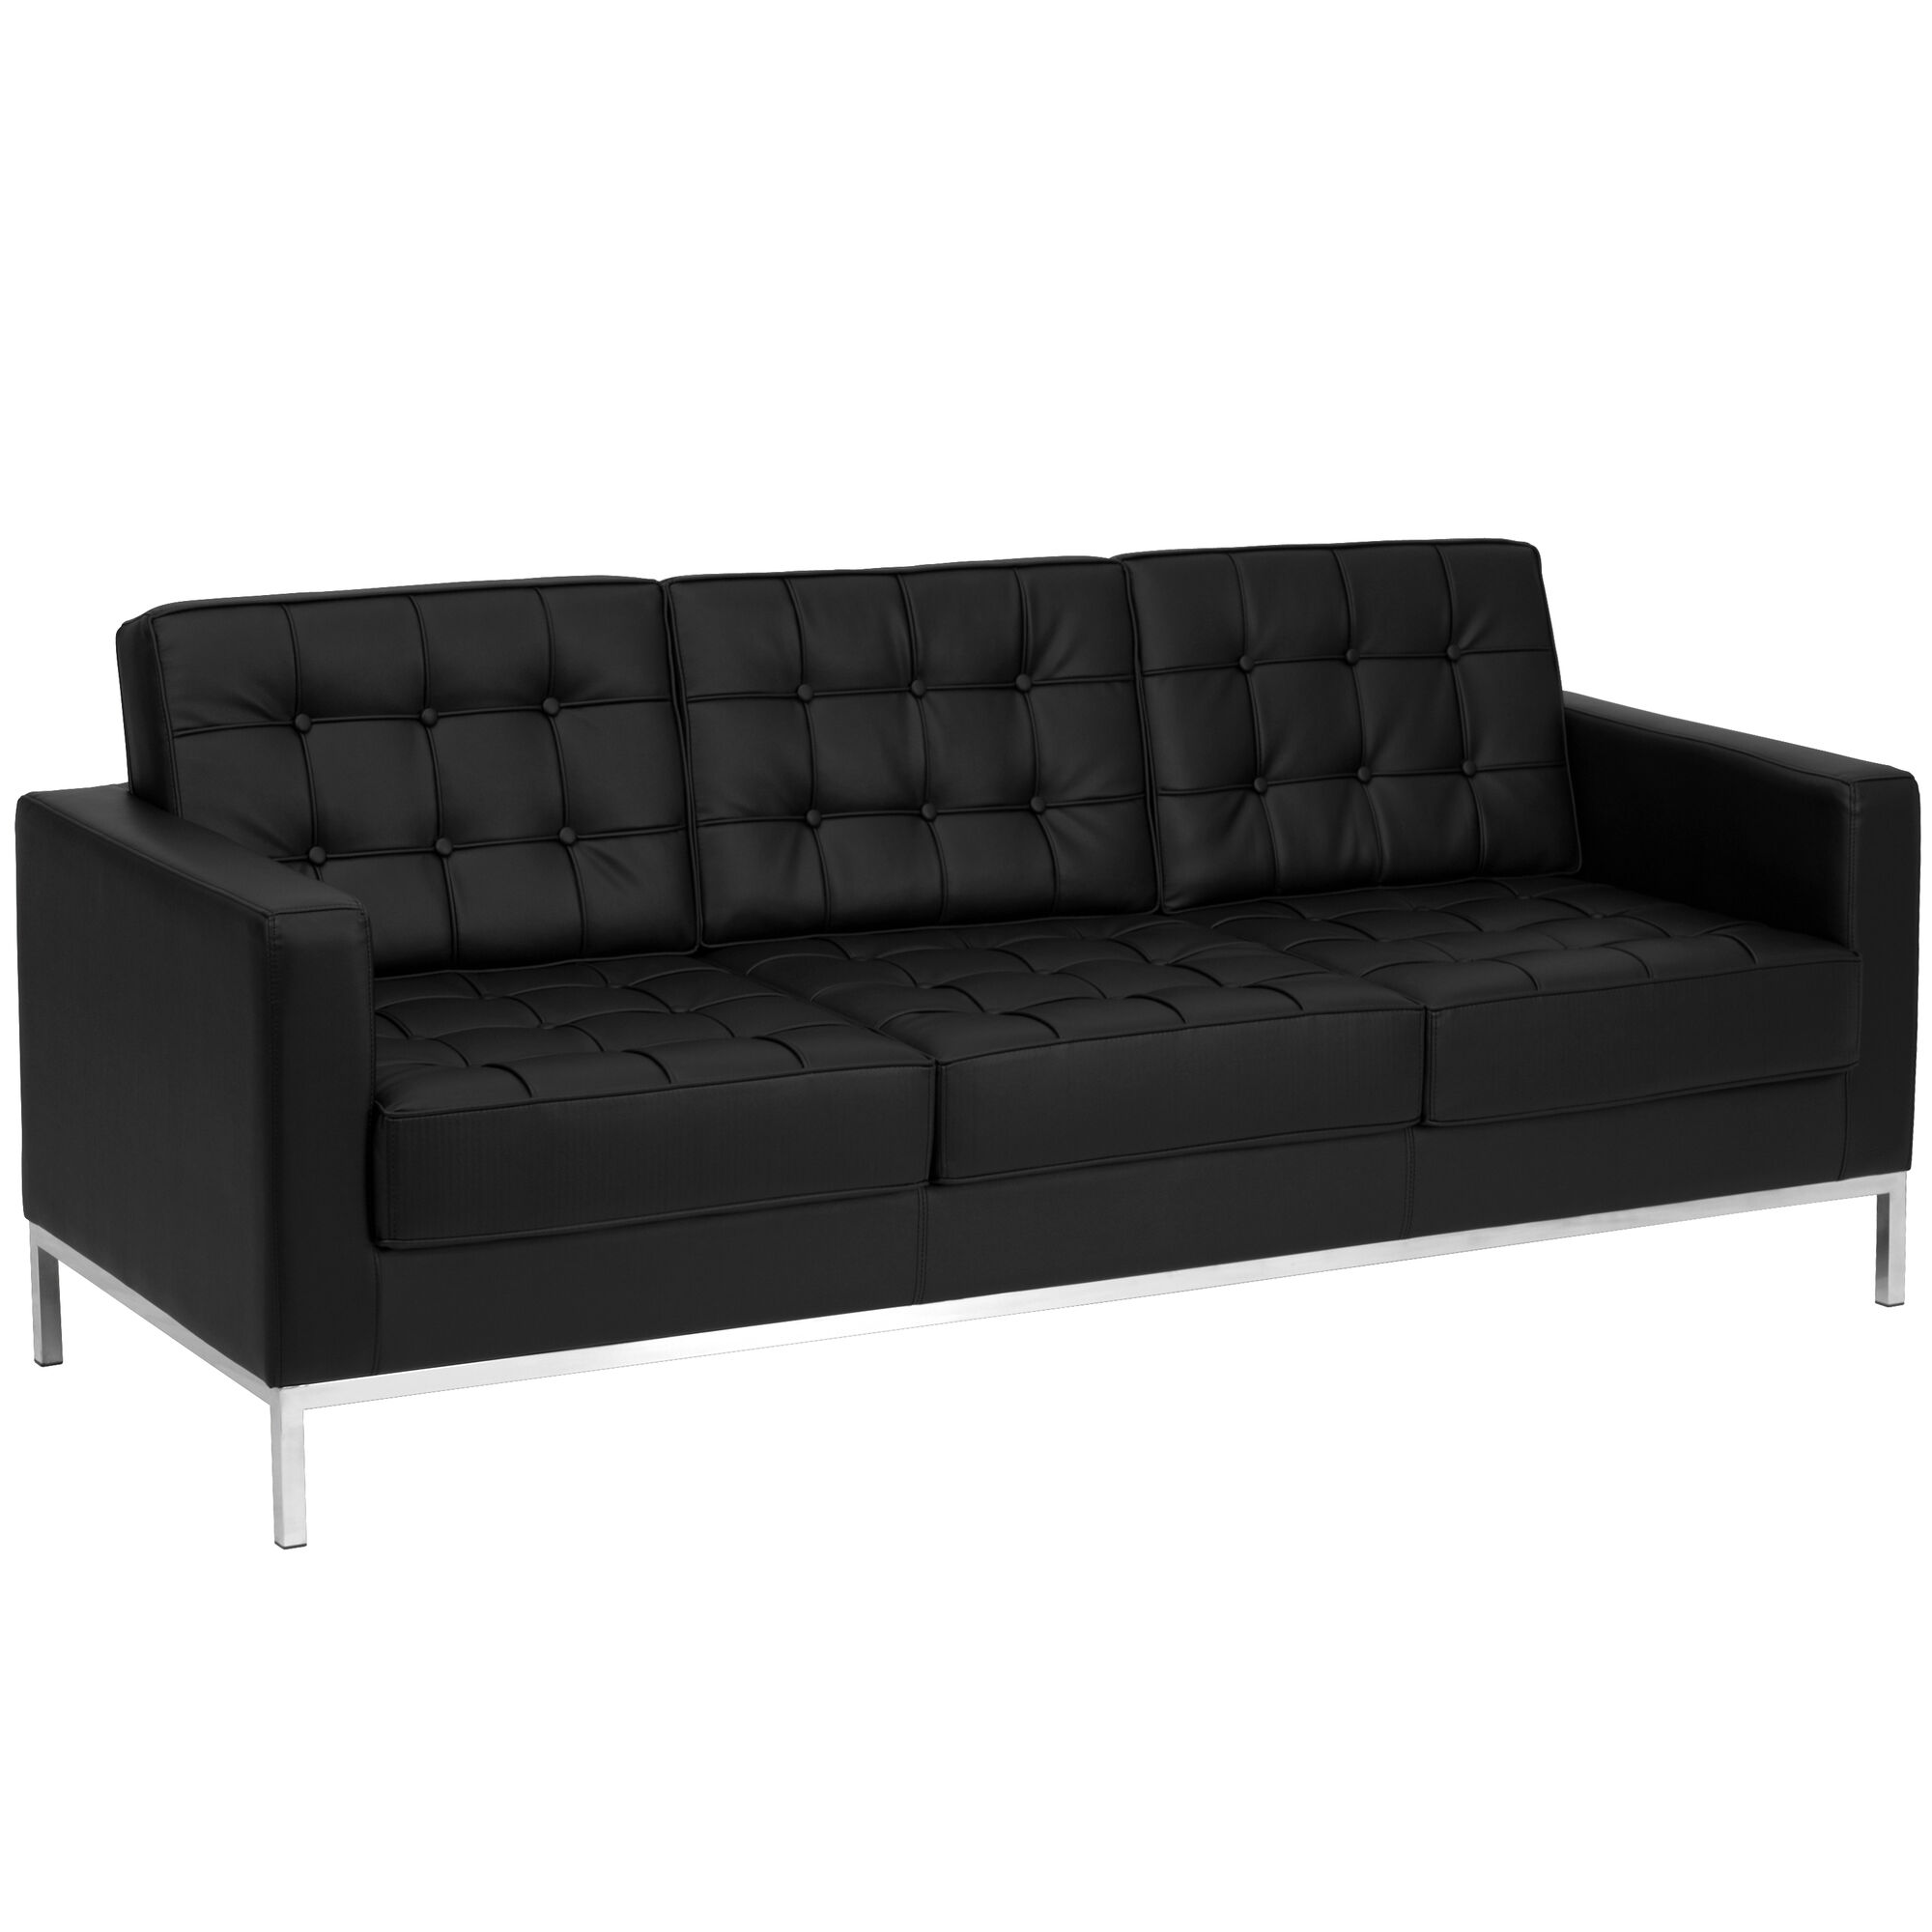 Flash Furniture ZB LACEY 831 2 SOFA COG GG at Bizchair